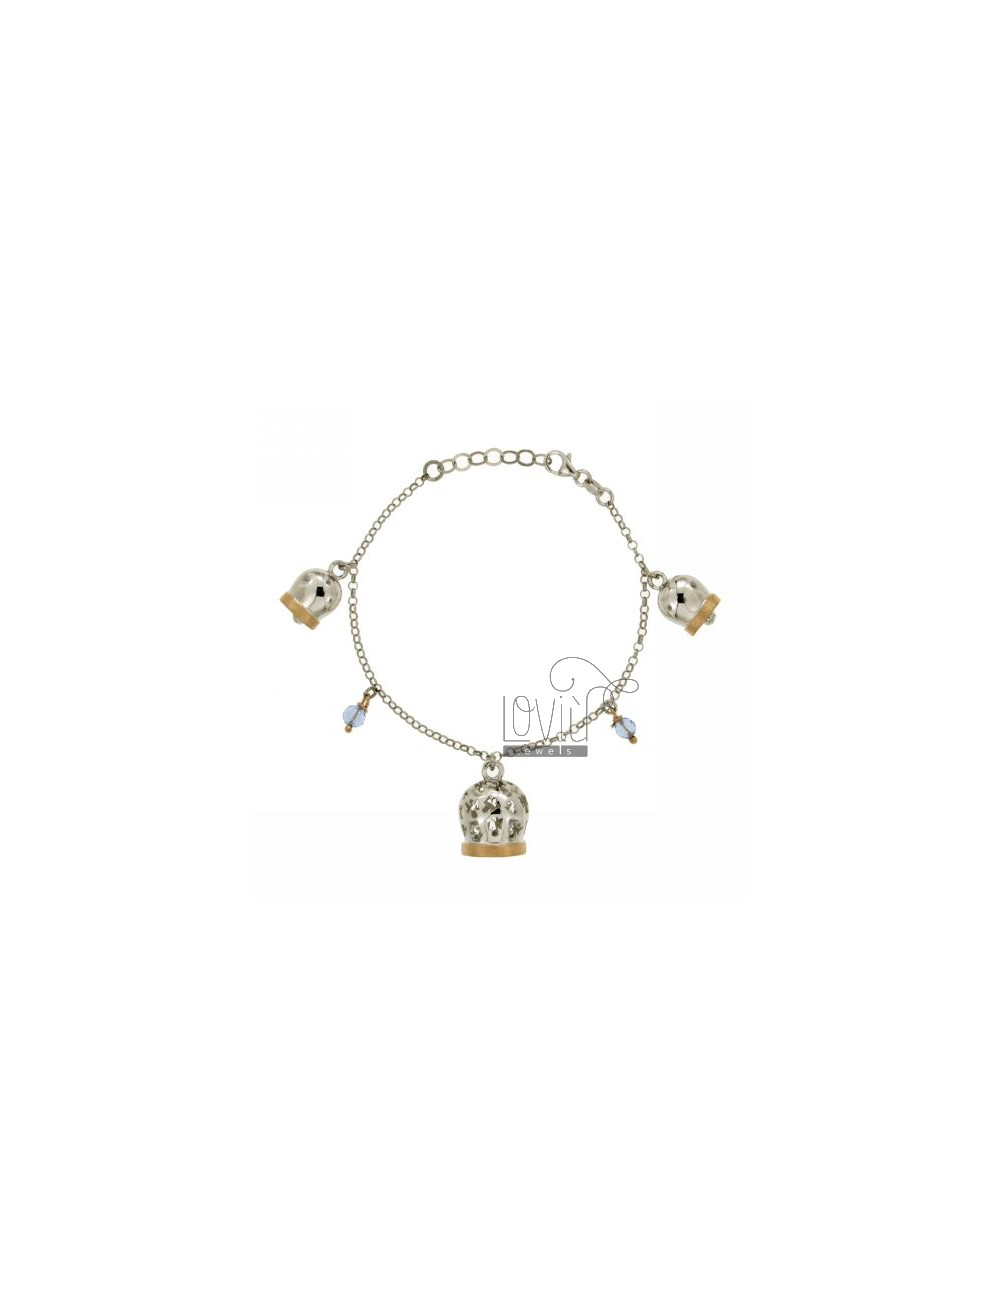 3 RINGS BRACELET IN AG RODIARO AND ROSE GOLD PLATED 19 CM TIT 925 ‰